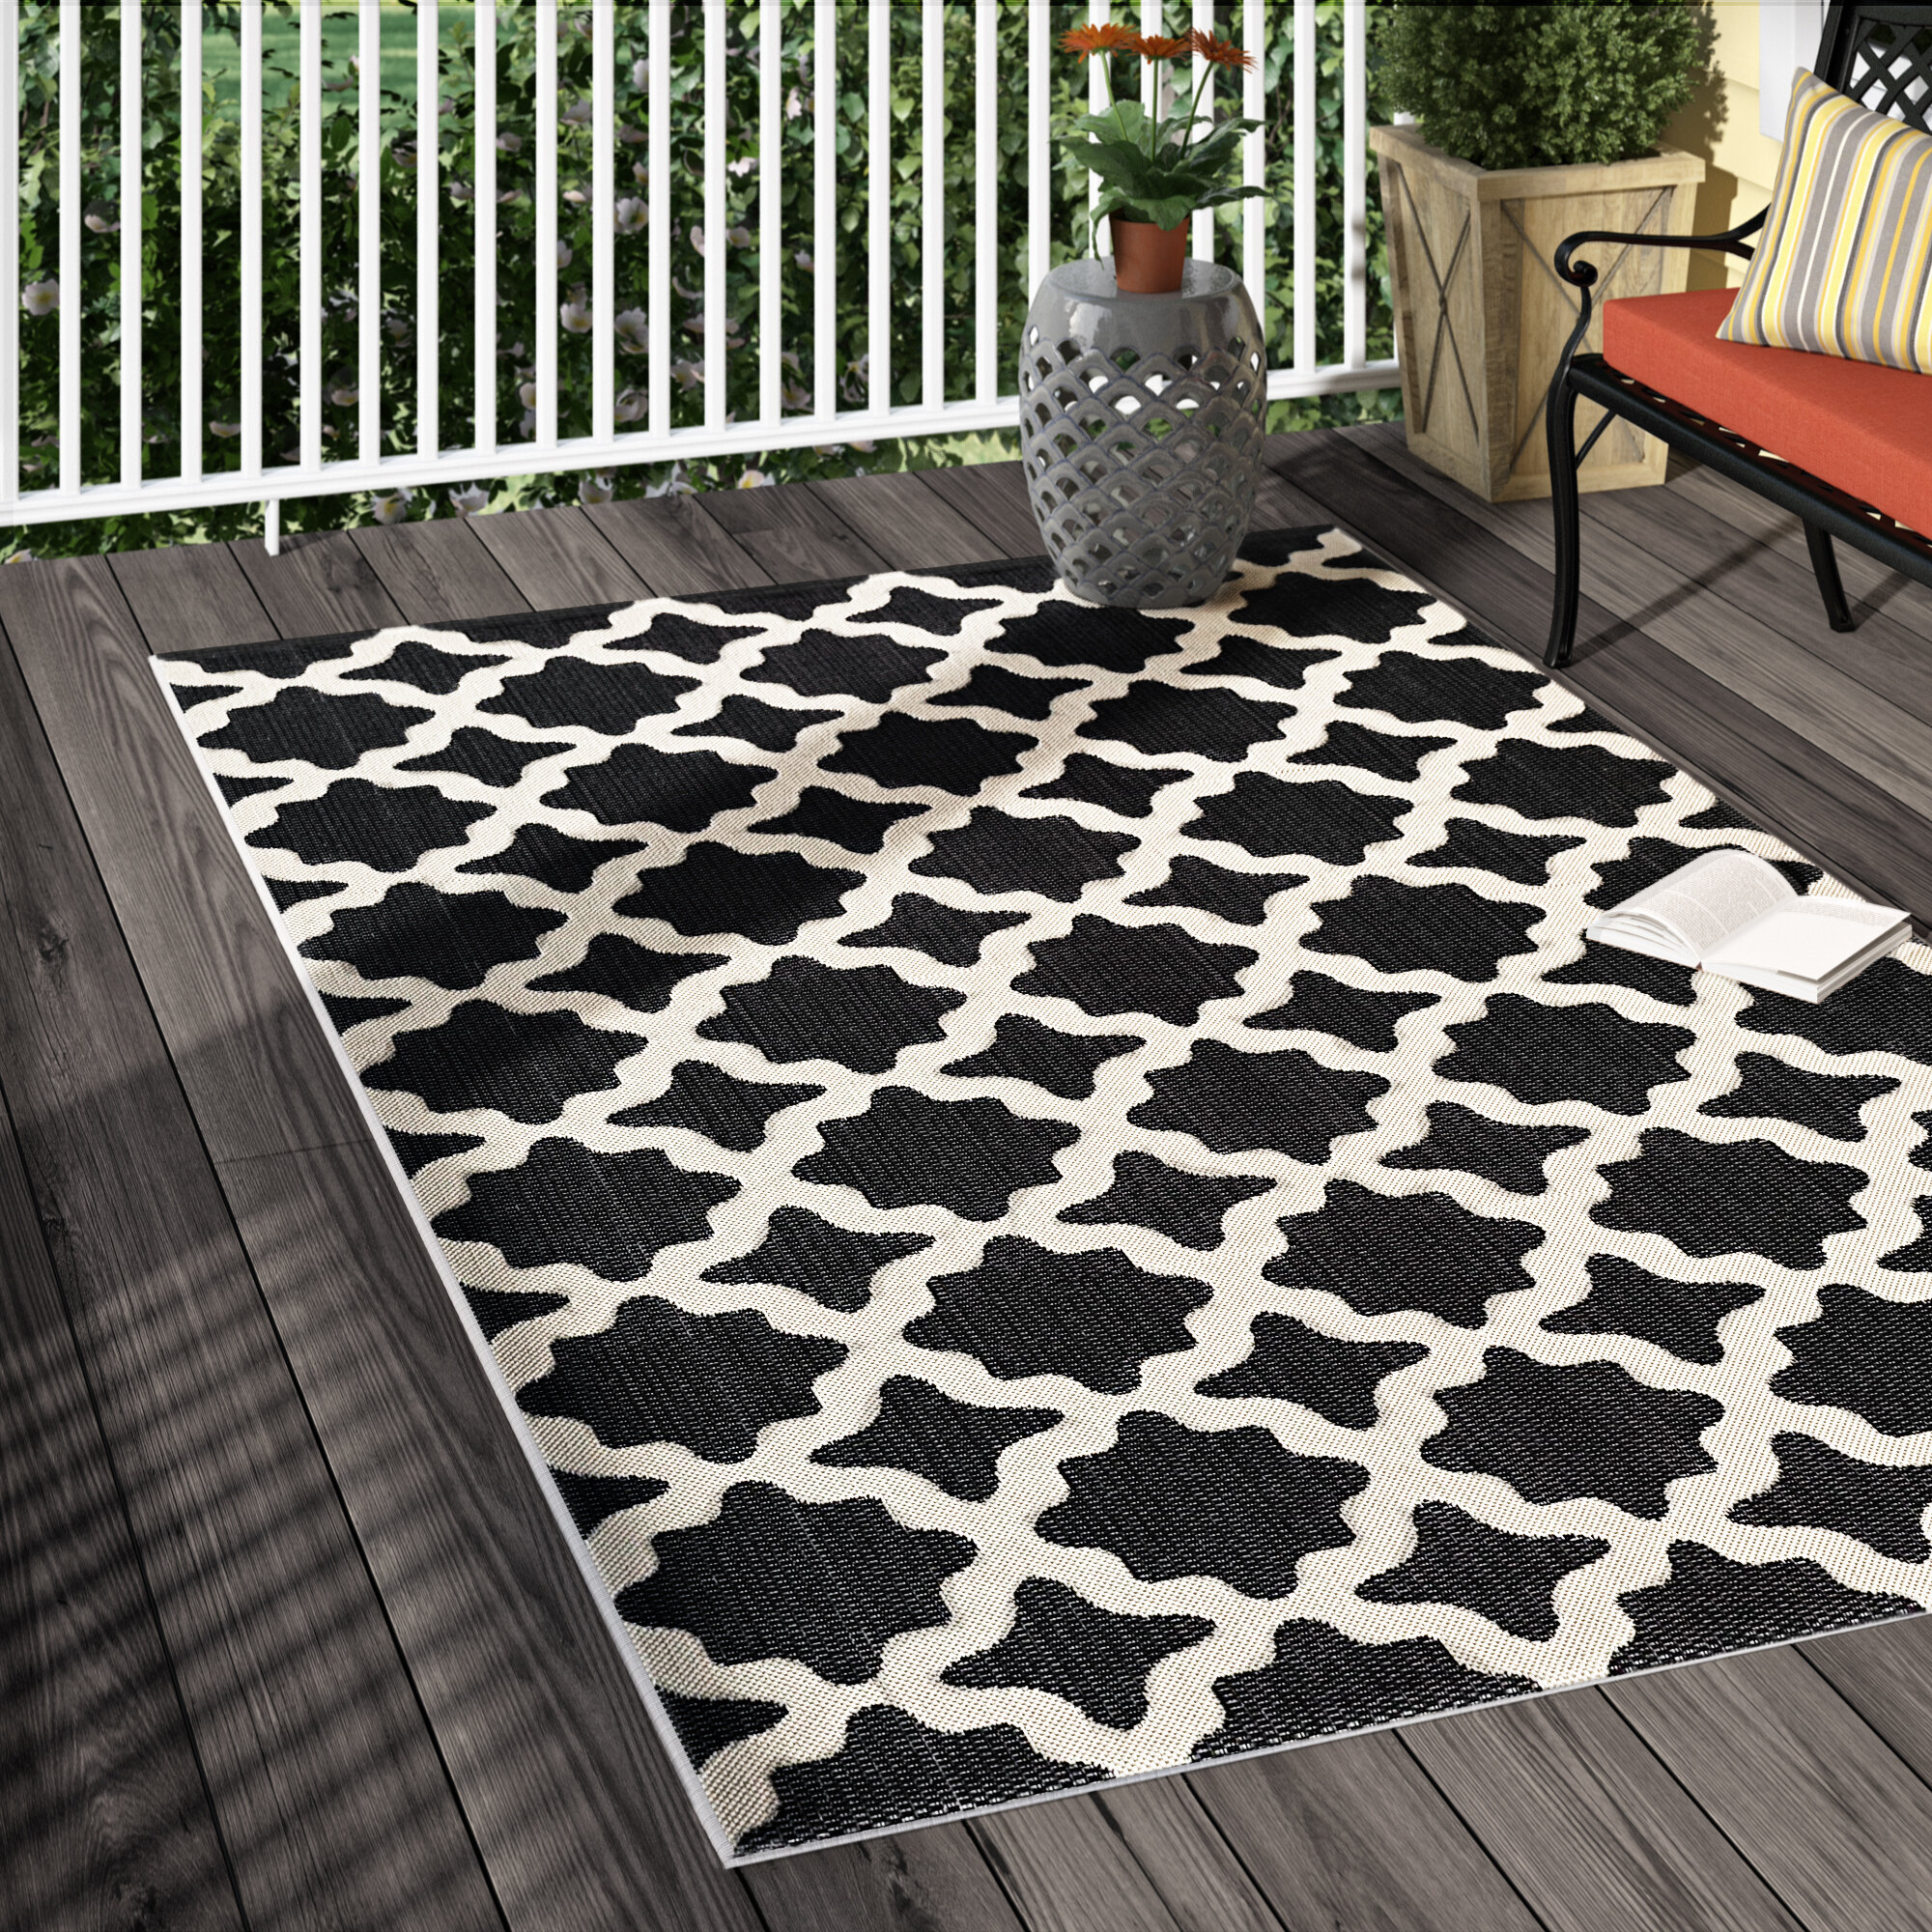 Charlton home hervey bay moroccan trellis black beige indoor outdoor area rug reviews wayfair